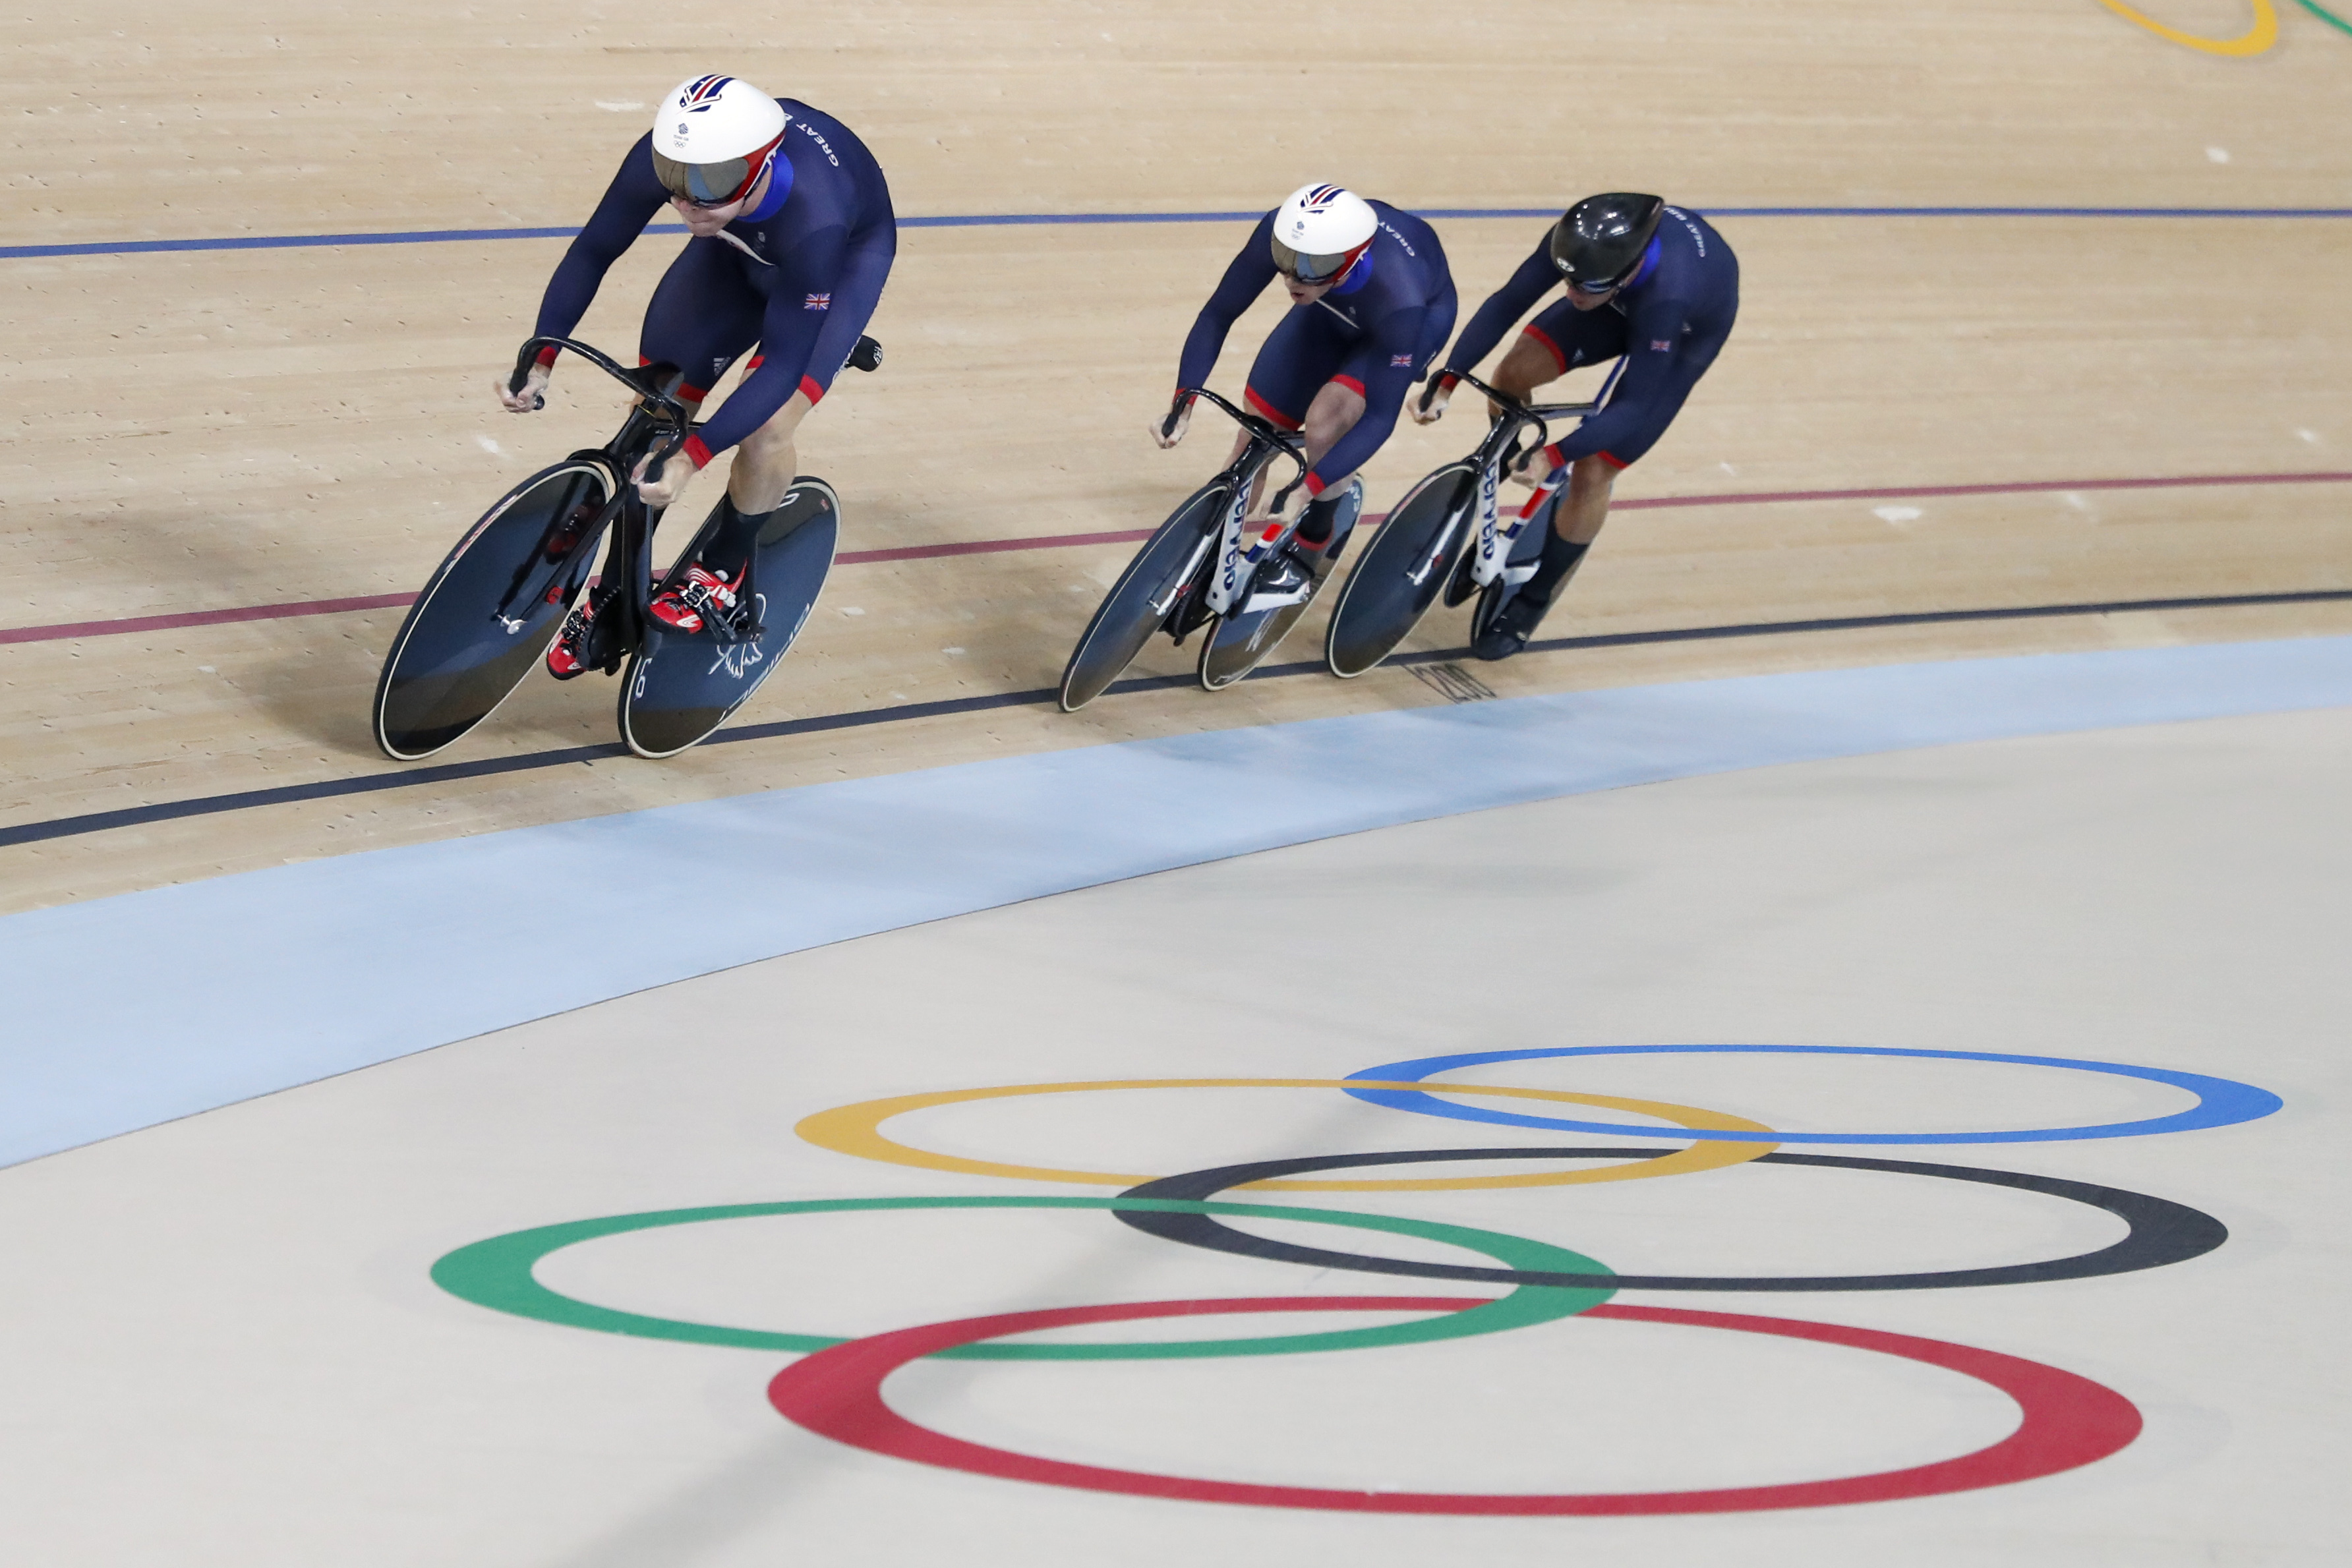 Great Britain's team competes in the men's team sprint qualifying at the Rio Olympic Velodrome during the 2016 Summer Olympics in Rio de Janeiro, Brazil, Thursday, Aug. 11, 2016. (AP Photo/Patrick Semansky)